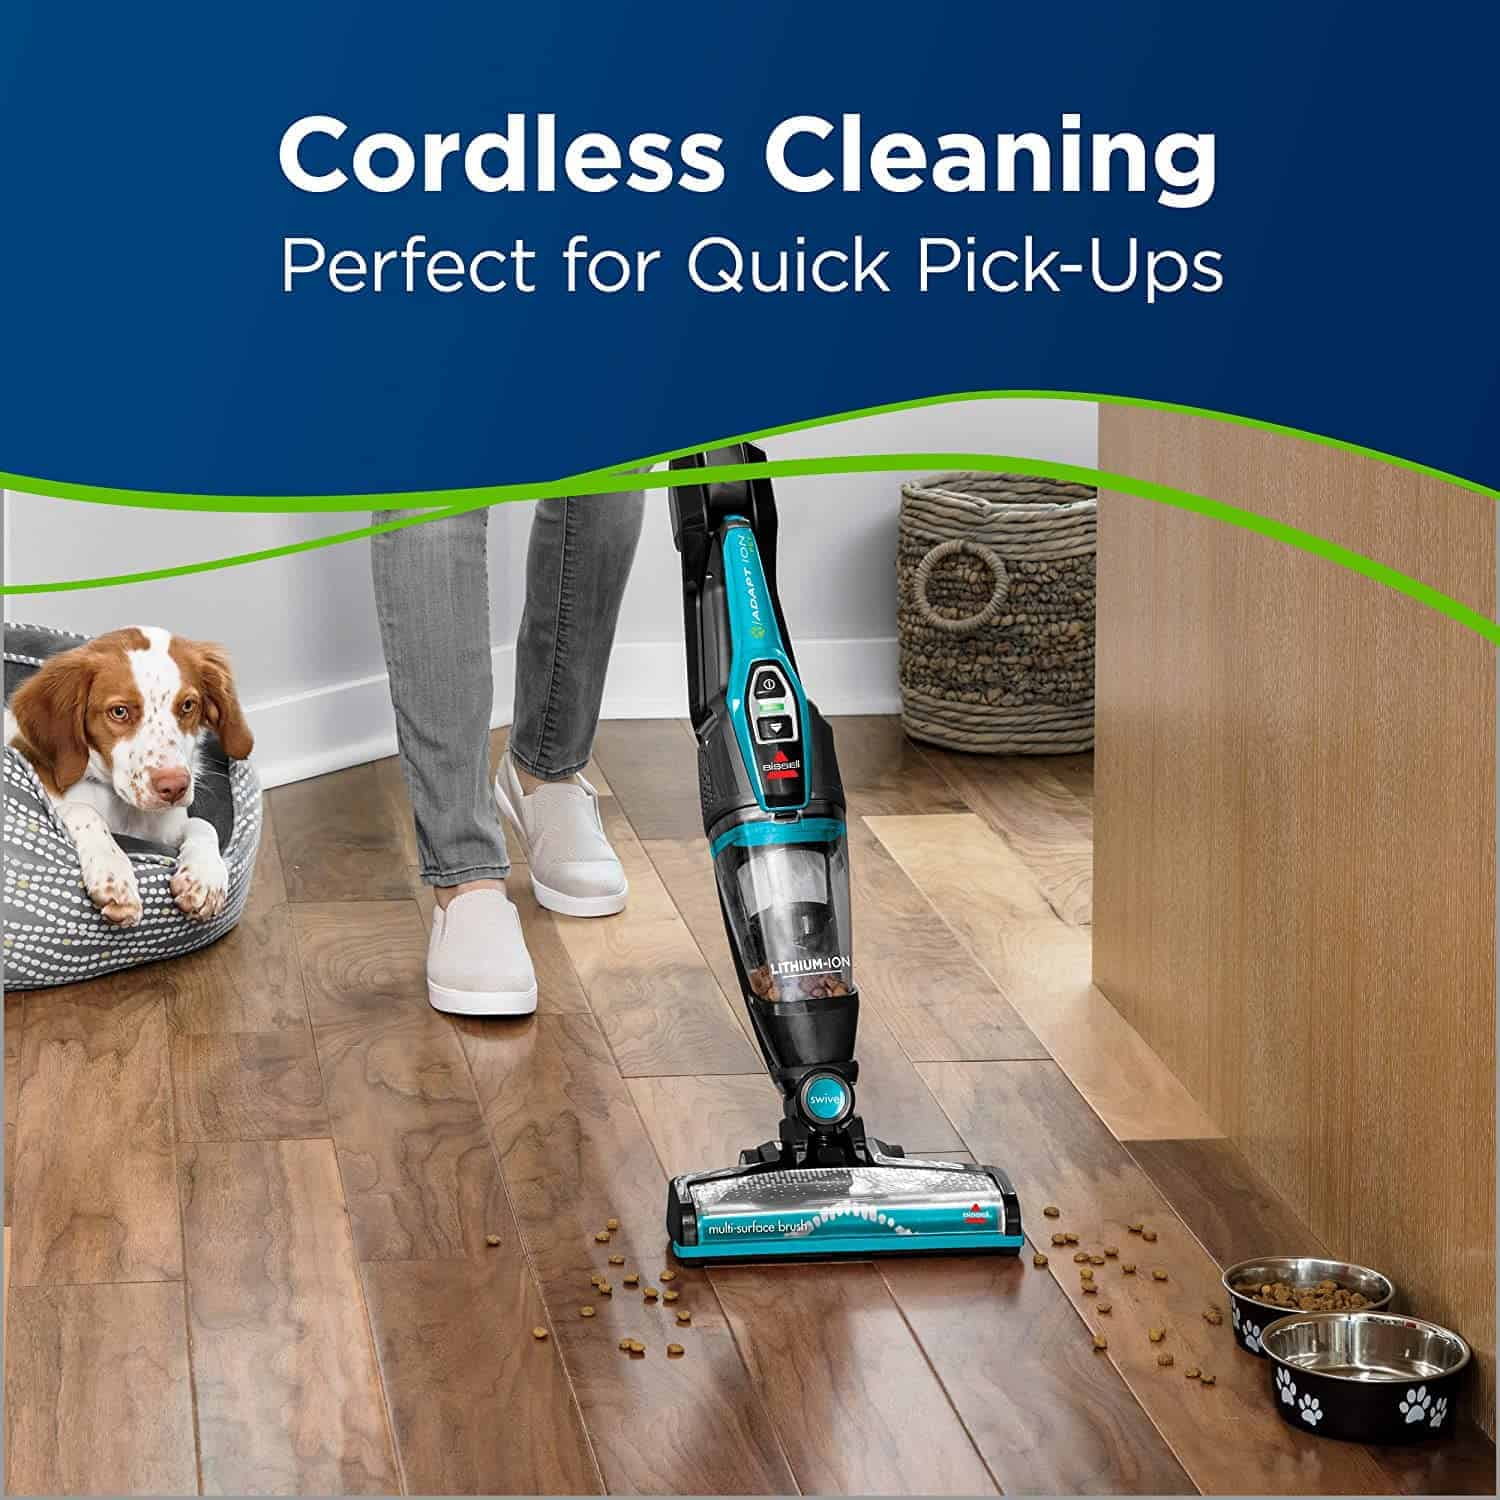 Best 2 in 1 Stick Cordless Vacuum for Pet Hair: BISSELL Adapt Ion